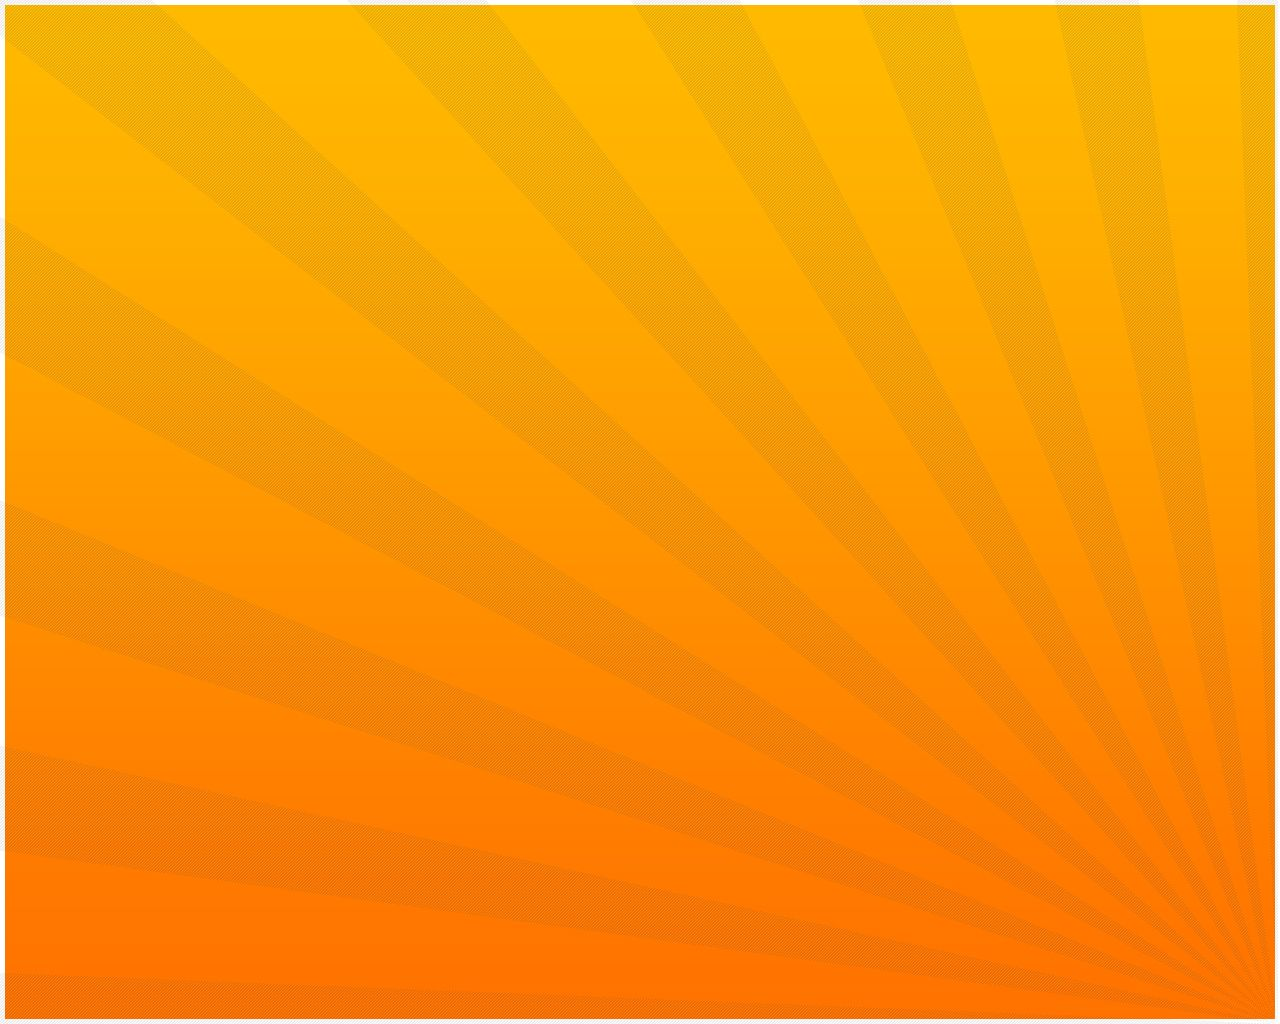 Orange | Collection of beautiful wallpapers in orange color ... for Light Orange Background Wallpaper  146hul